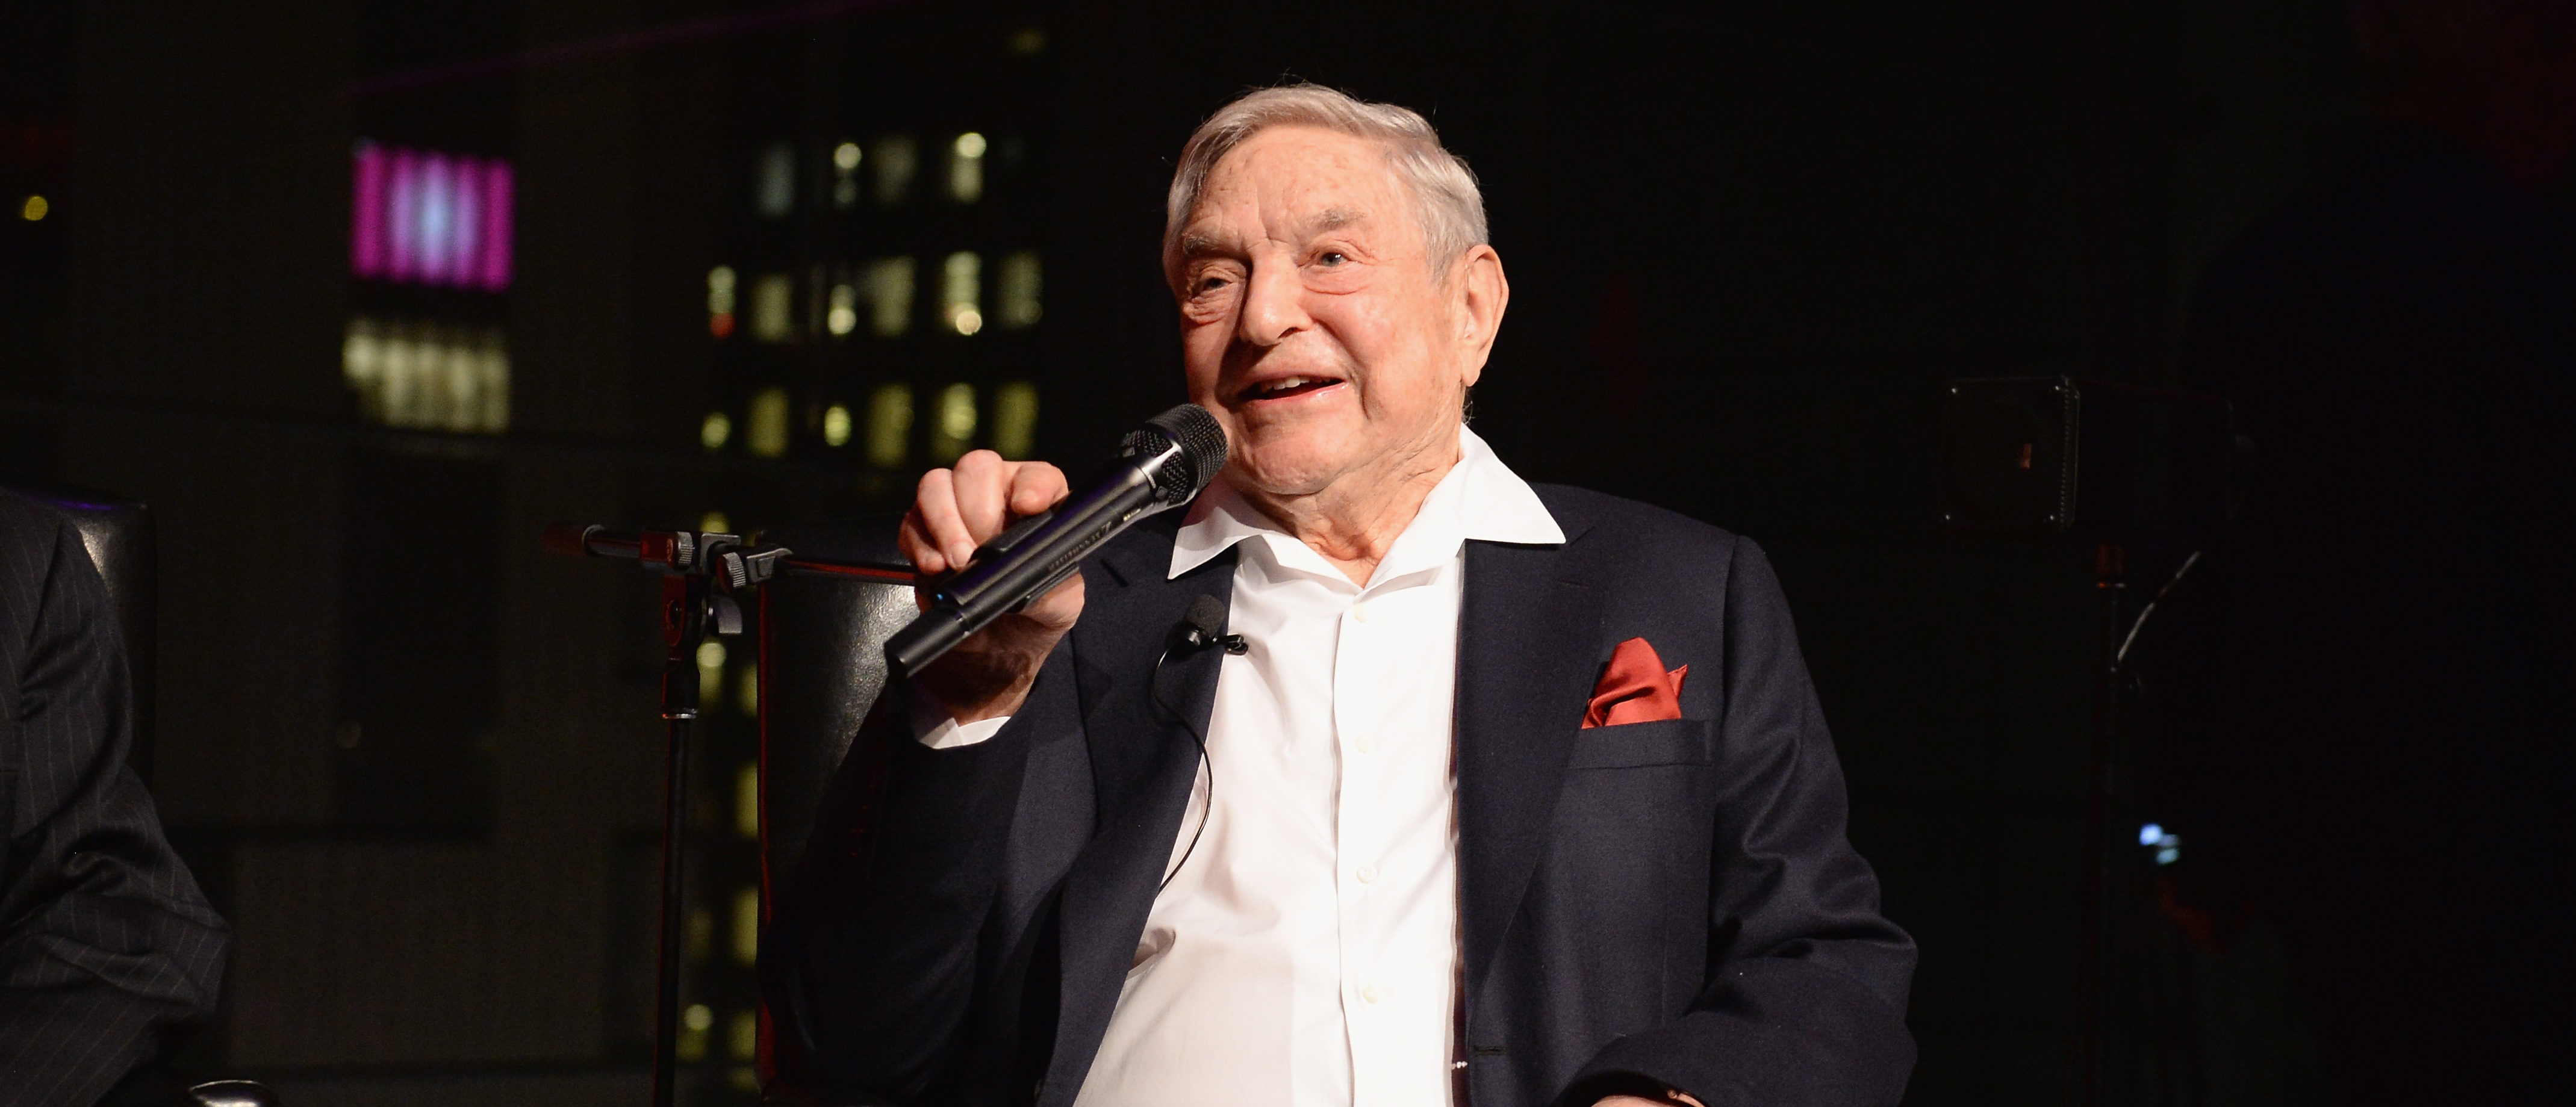 George Soros Has Donated A Fortune Fighting Trump's Immigration Agenda, New Book Alleges